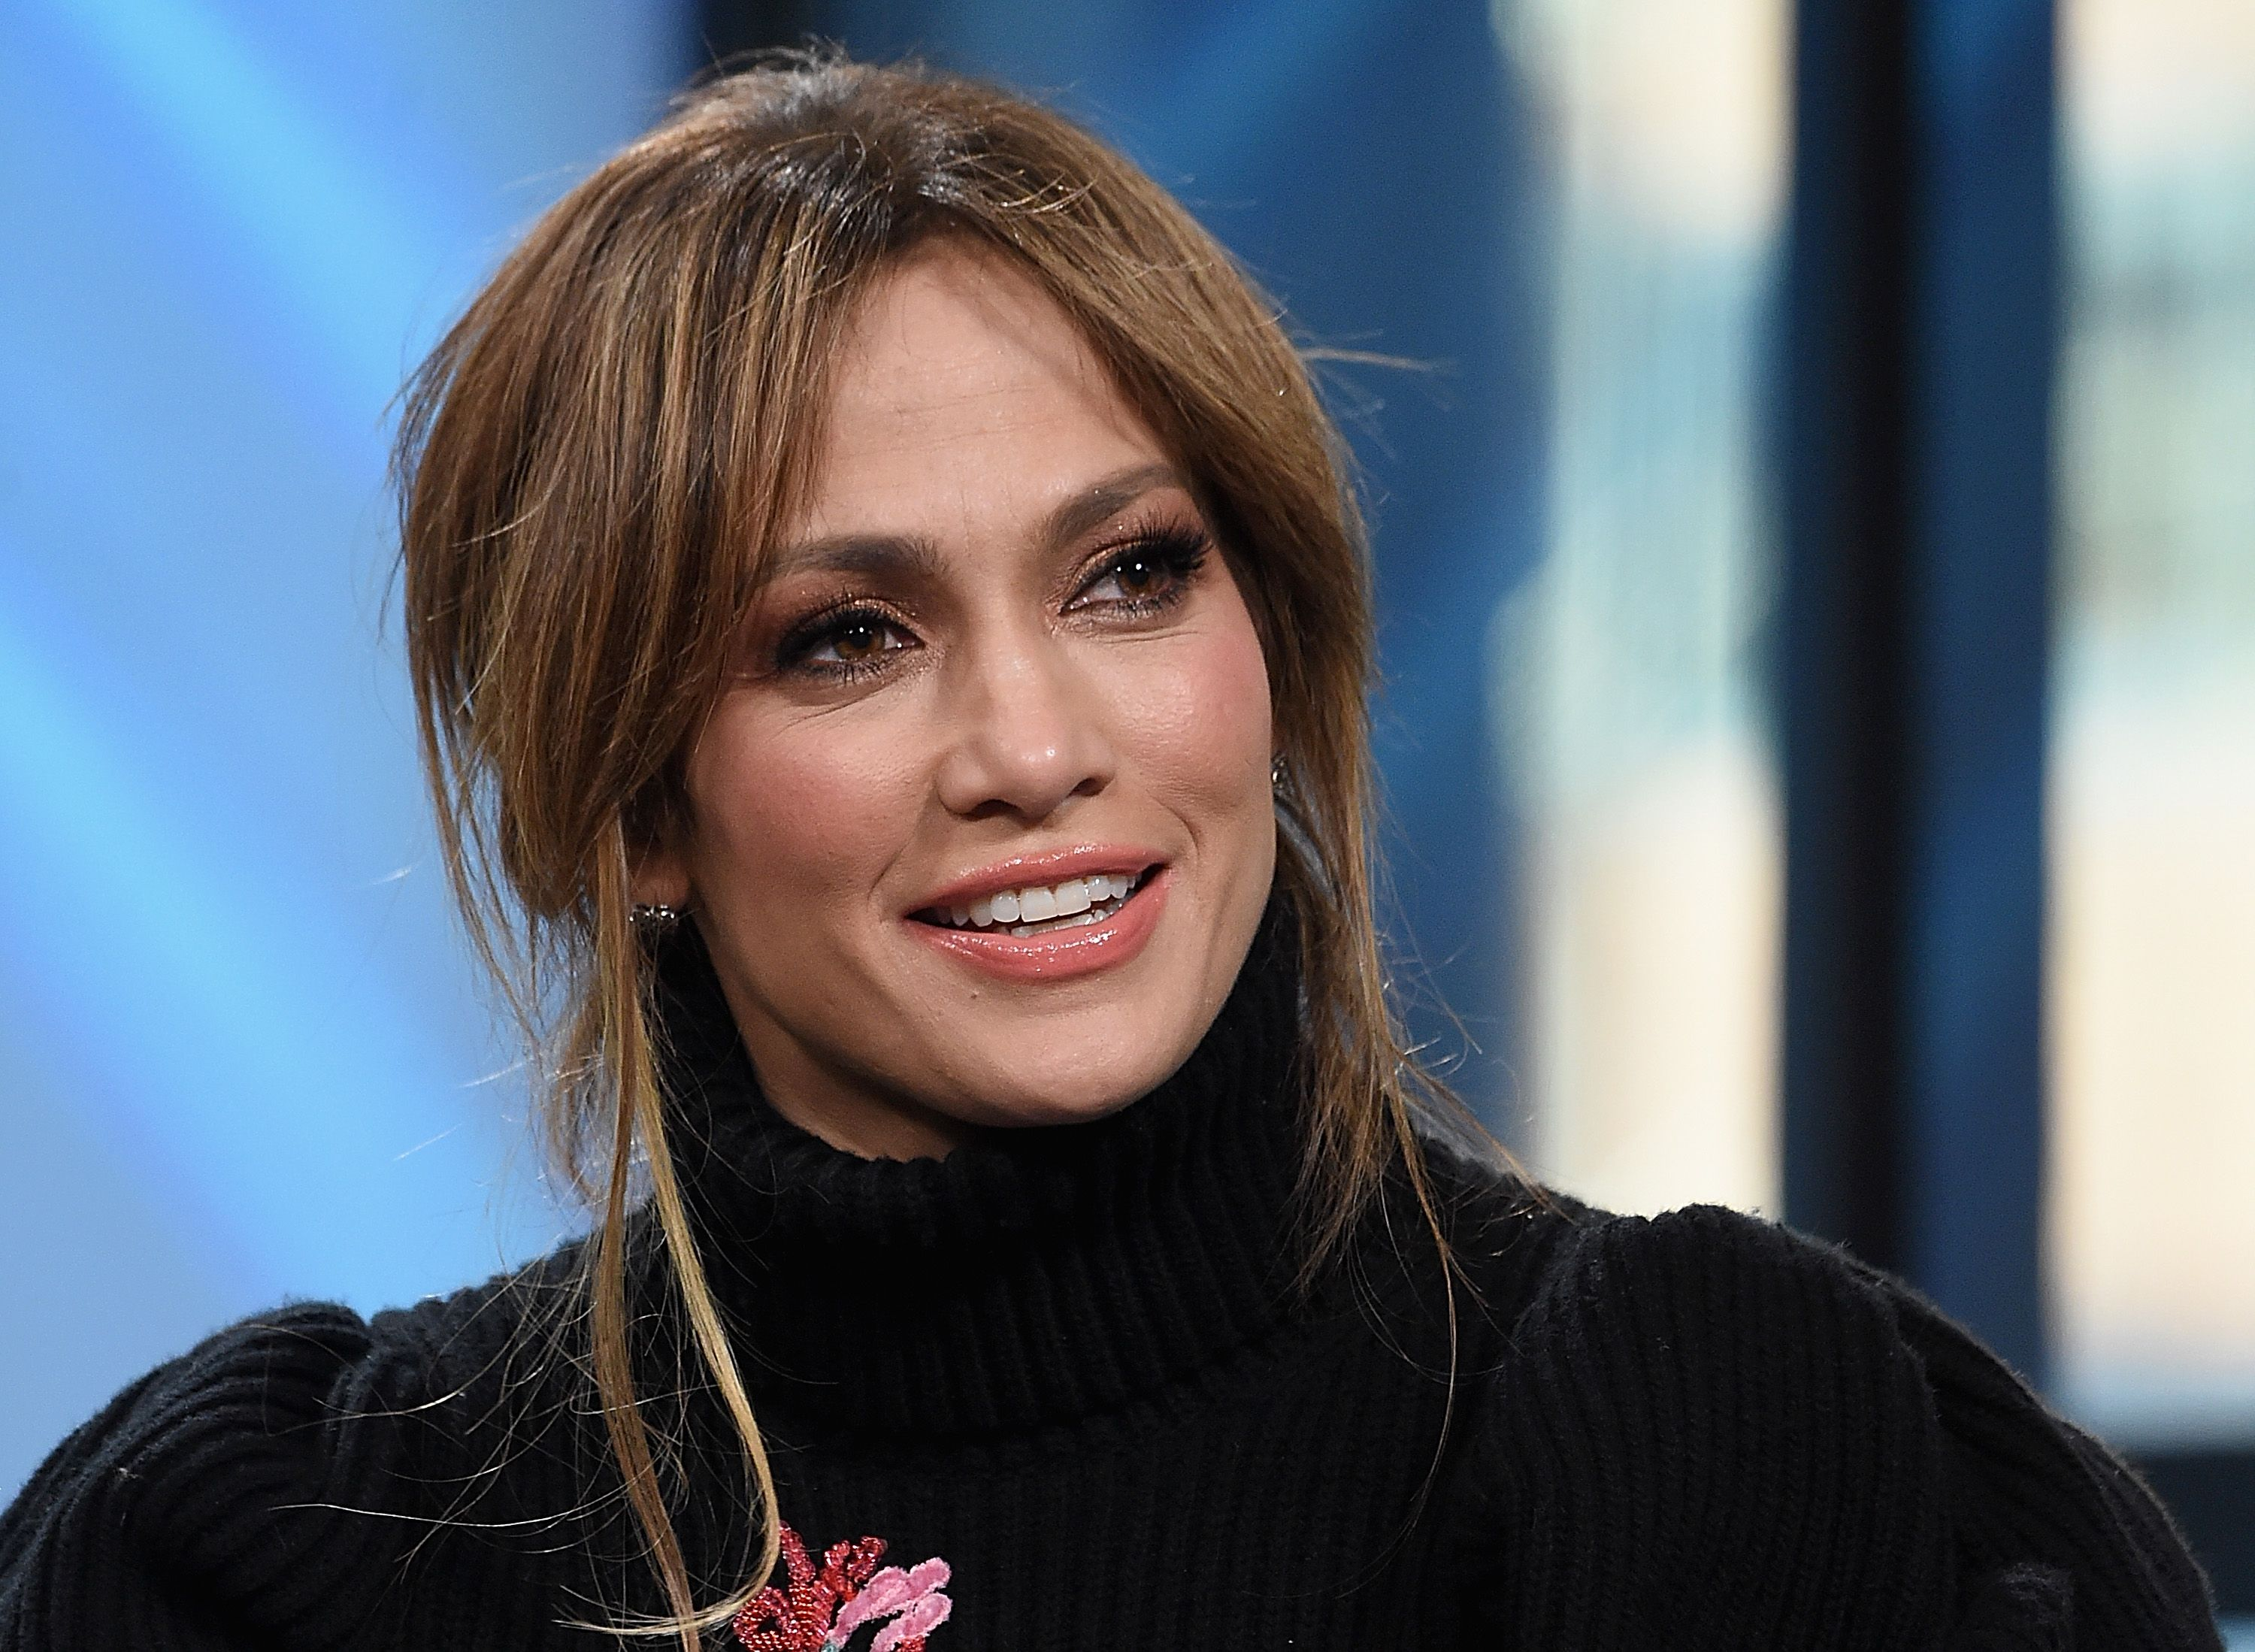 Who is jlo dating april 2020